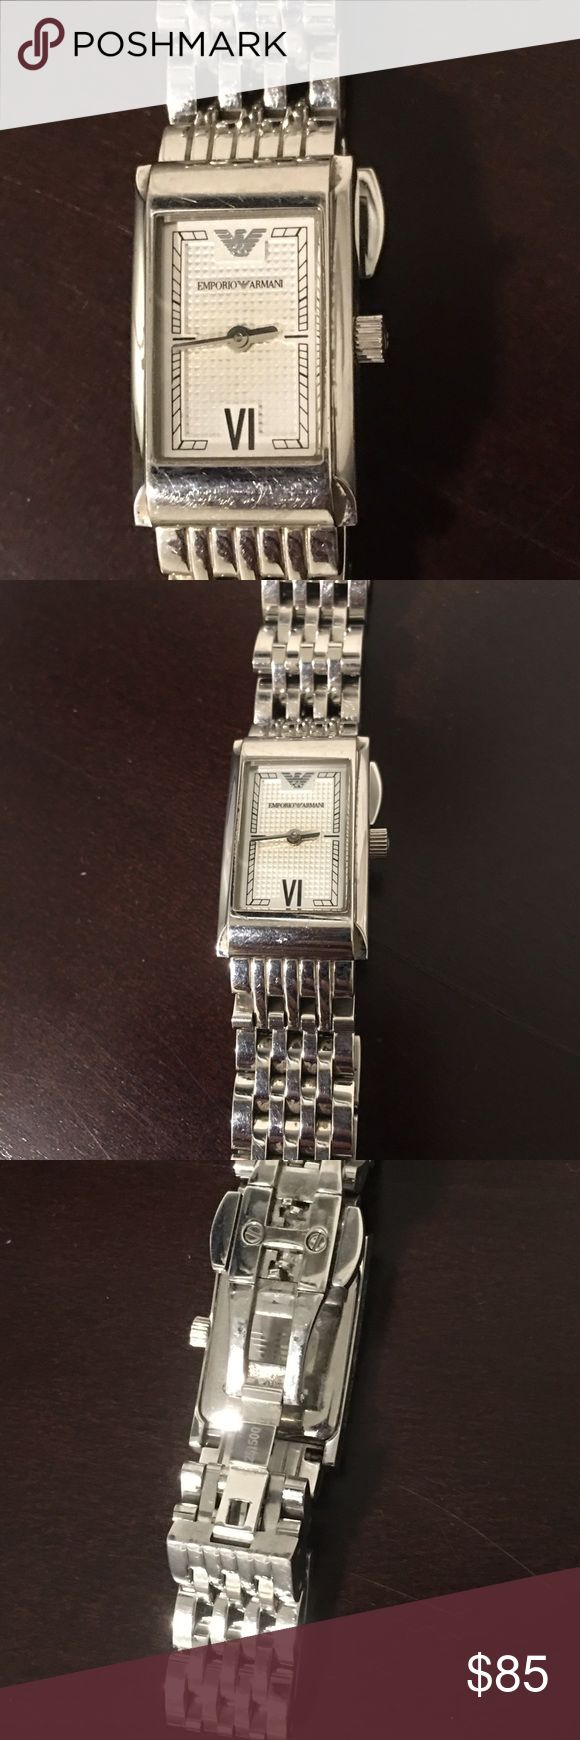 Silver Women's Emporio Armani Watch Silver Women's Emporio Armani Watch. Some wear as shown. Not all links attached but I have all links from original purchase. New battery needed. Emporio Armani Accessories Watches